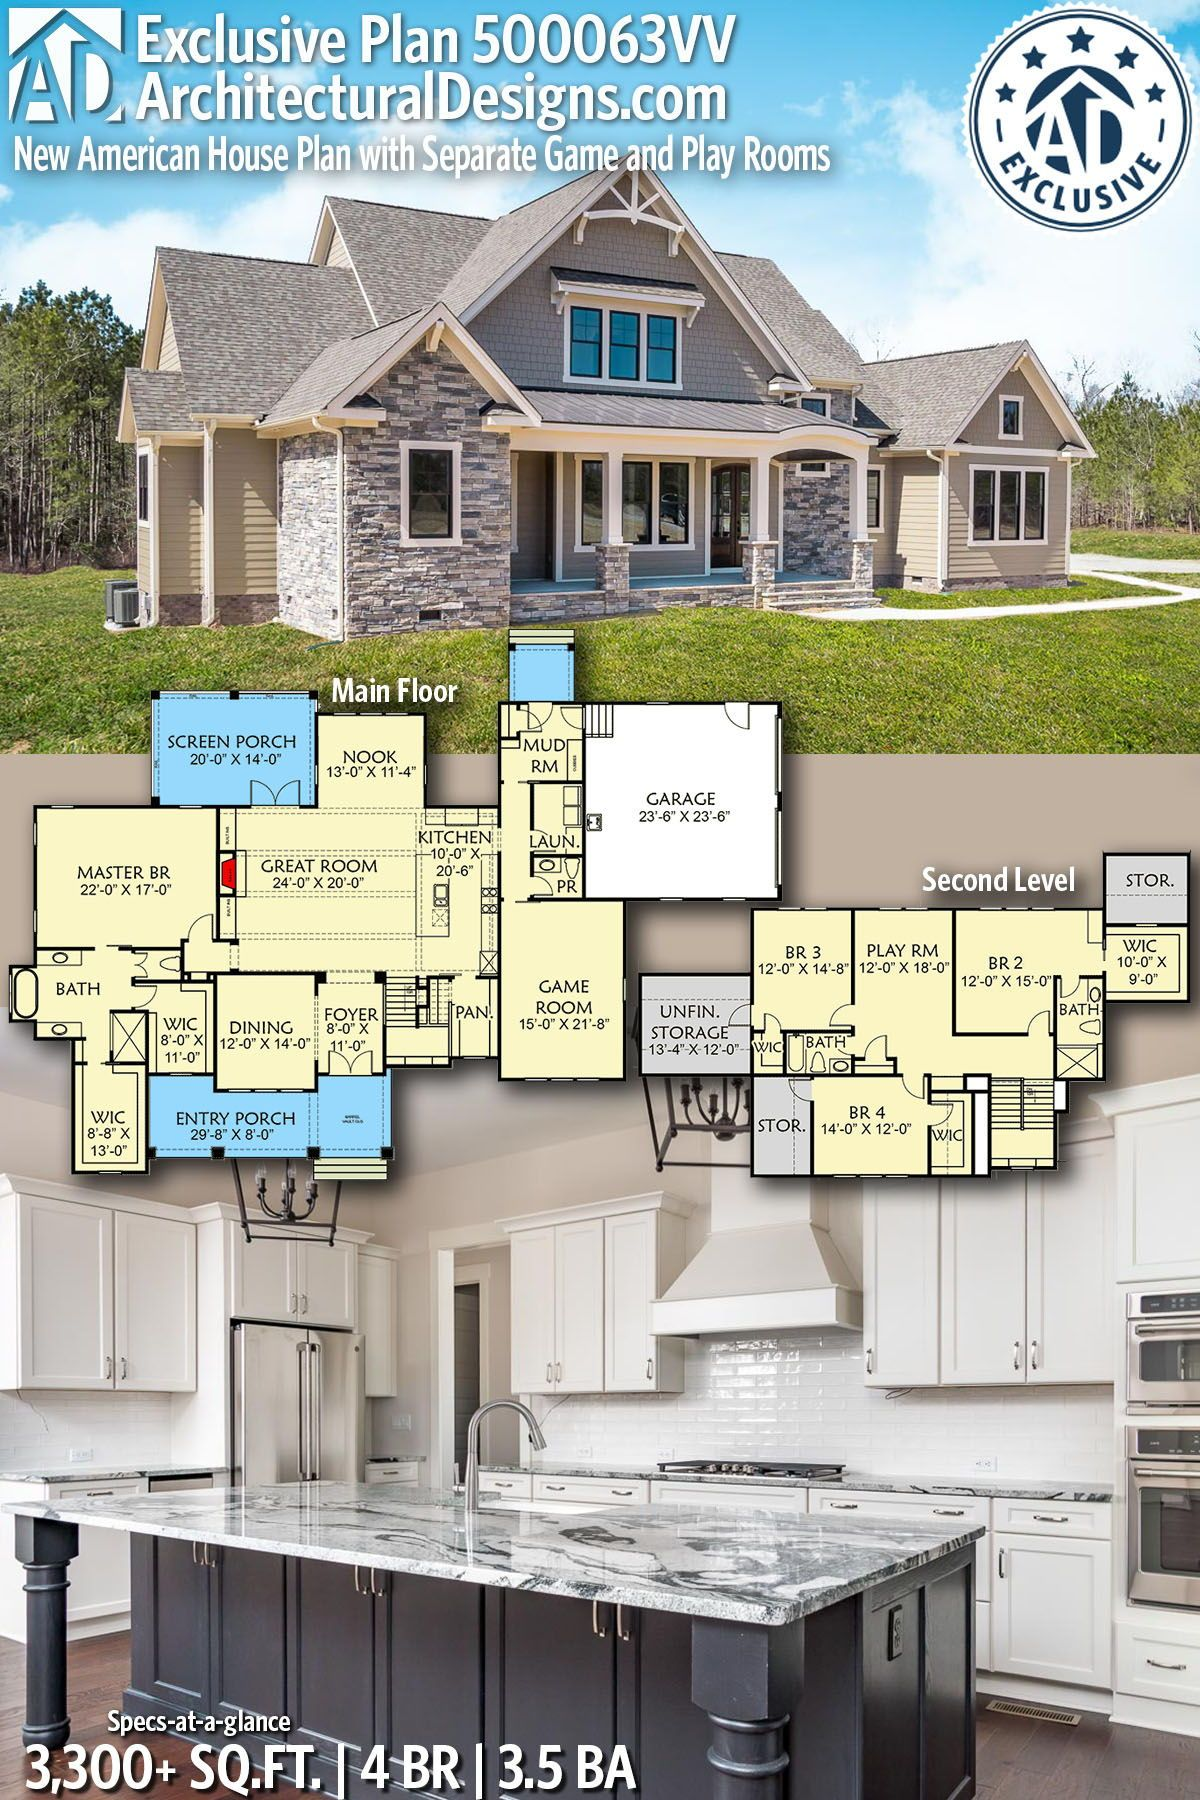 Plan 500063vv New American House Plan With Separate Game And Play Rooms Craftsman House Plans House Plans American Houses